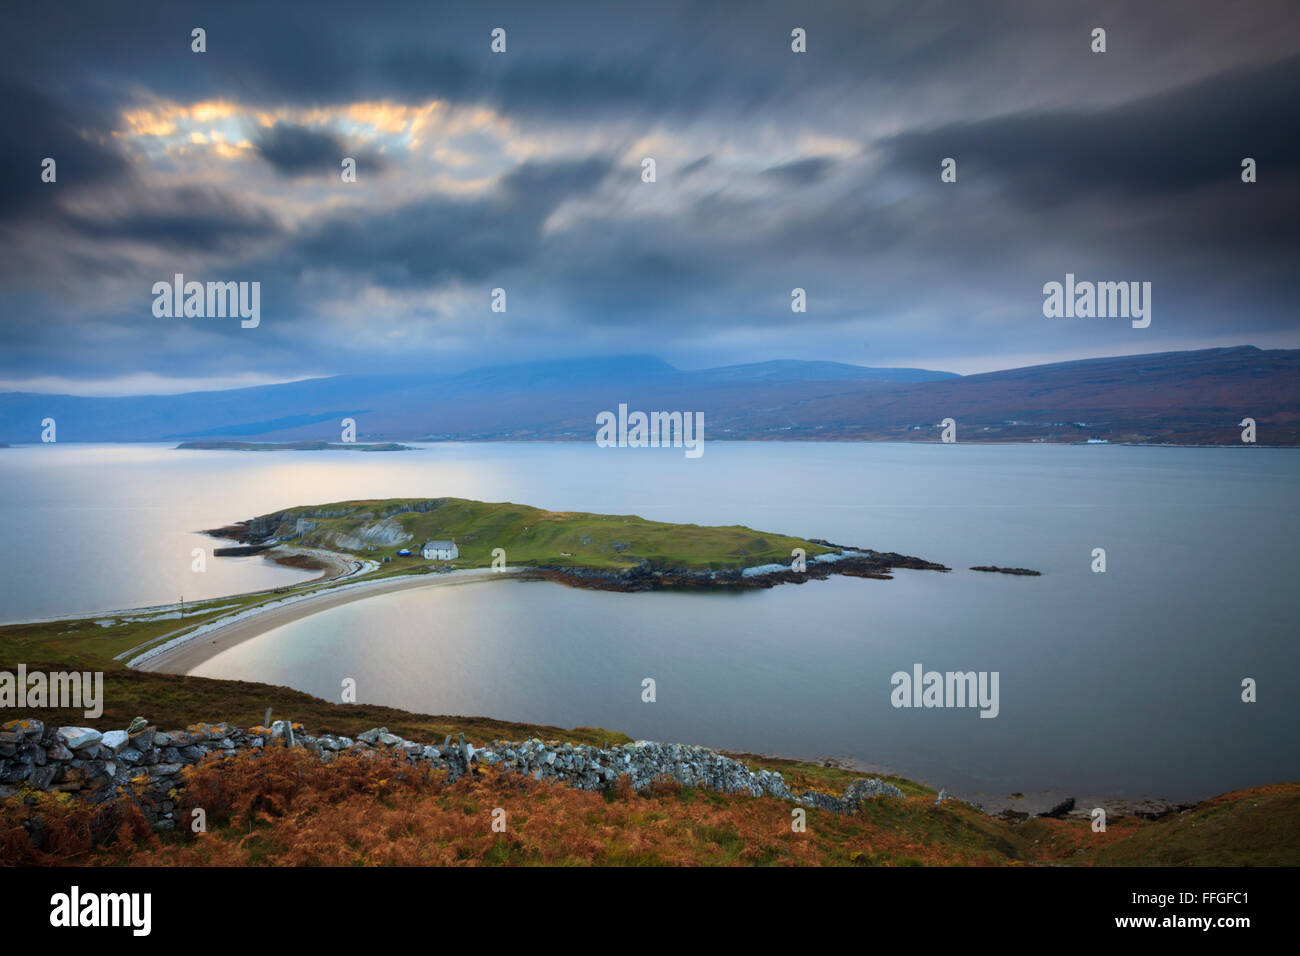 Ard Neackie on Loch Eriboll in the North West Highlands of Scotland, captured at sunset in late October. - Stock Image